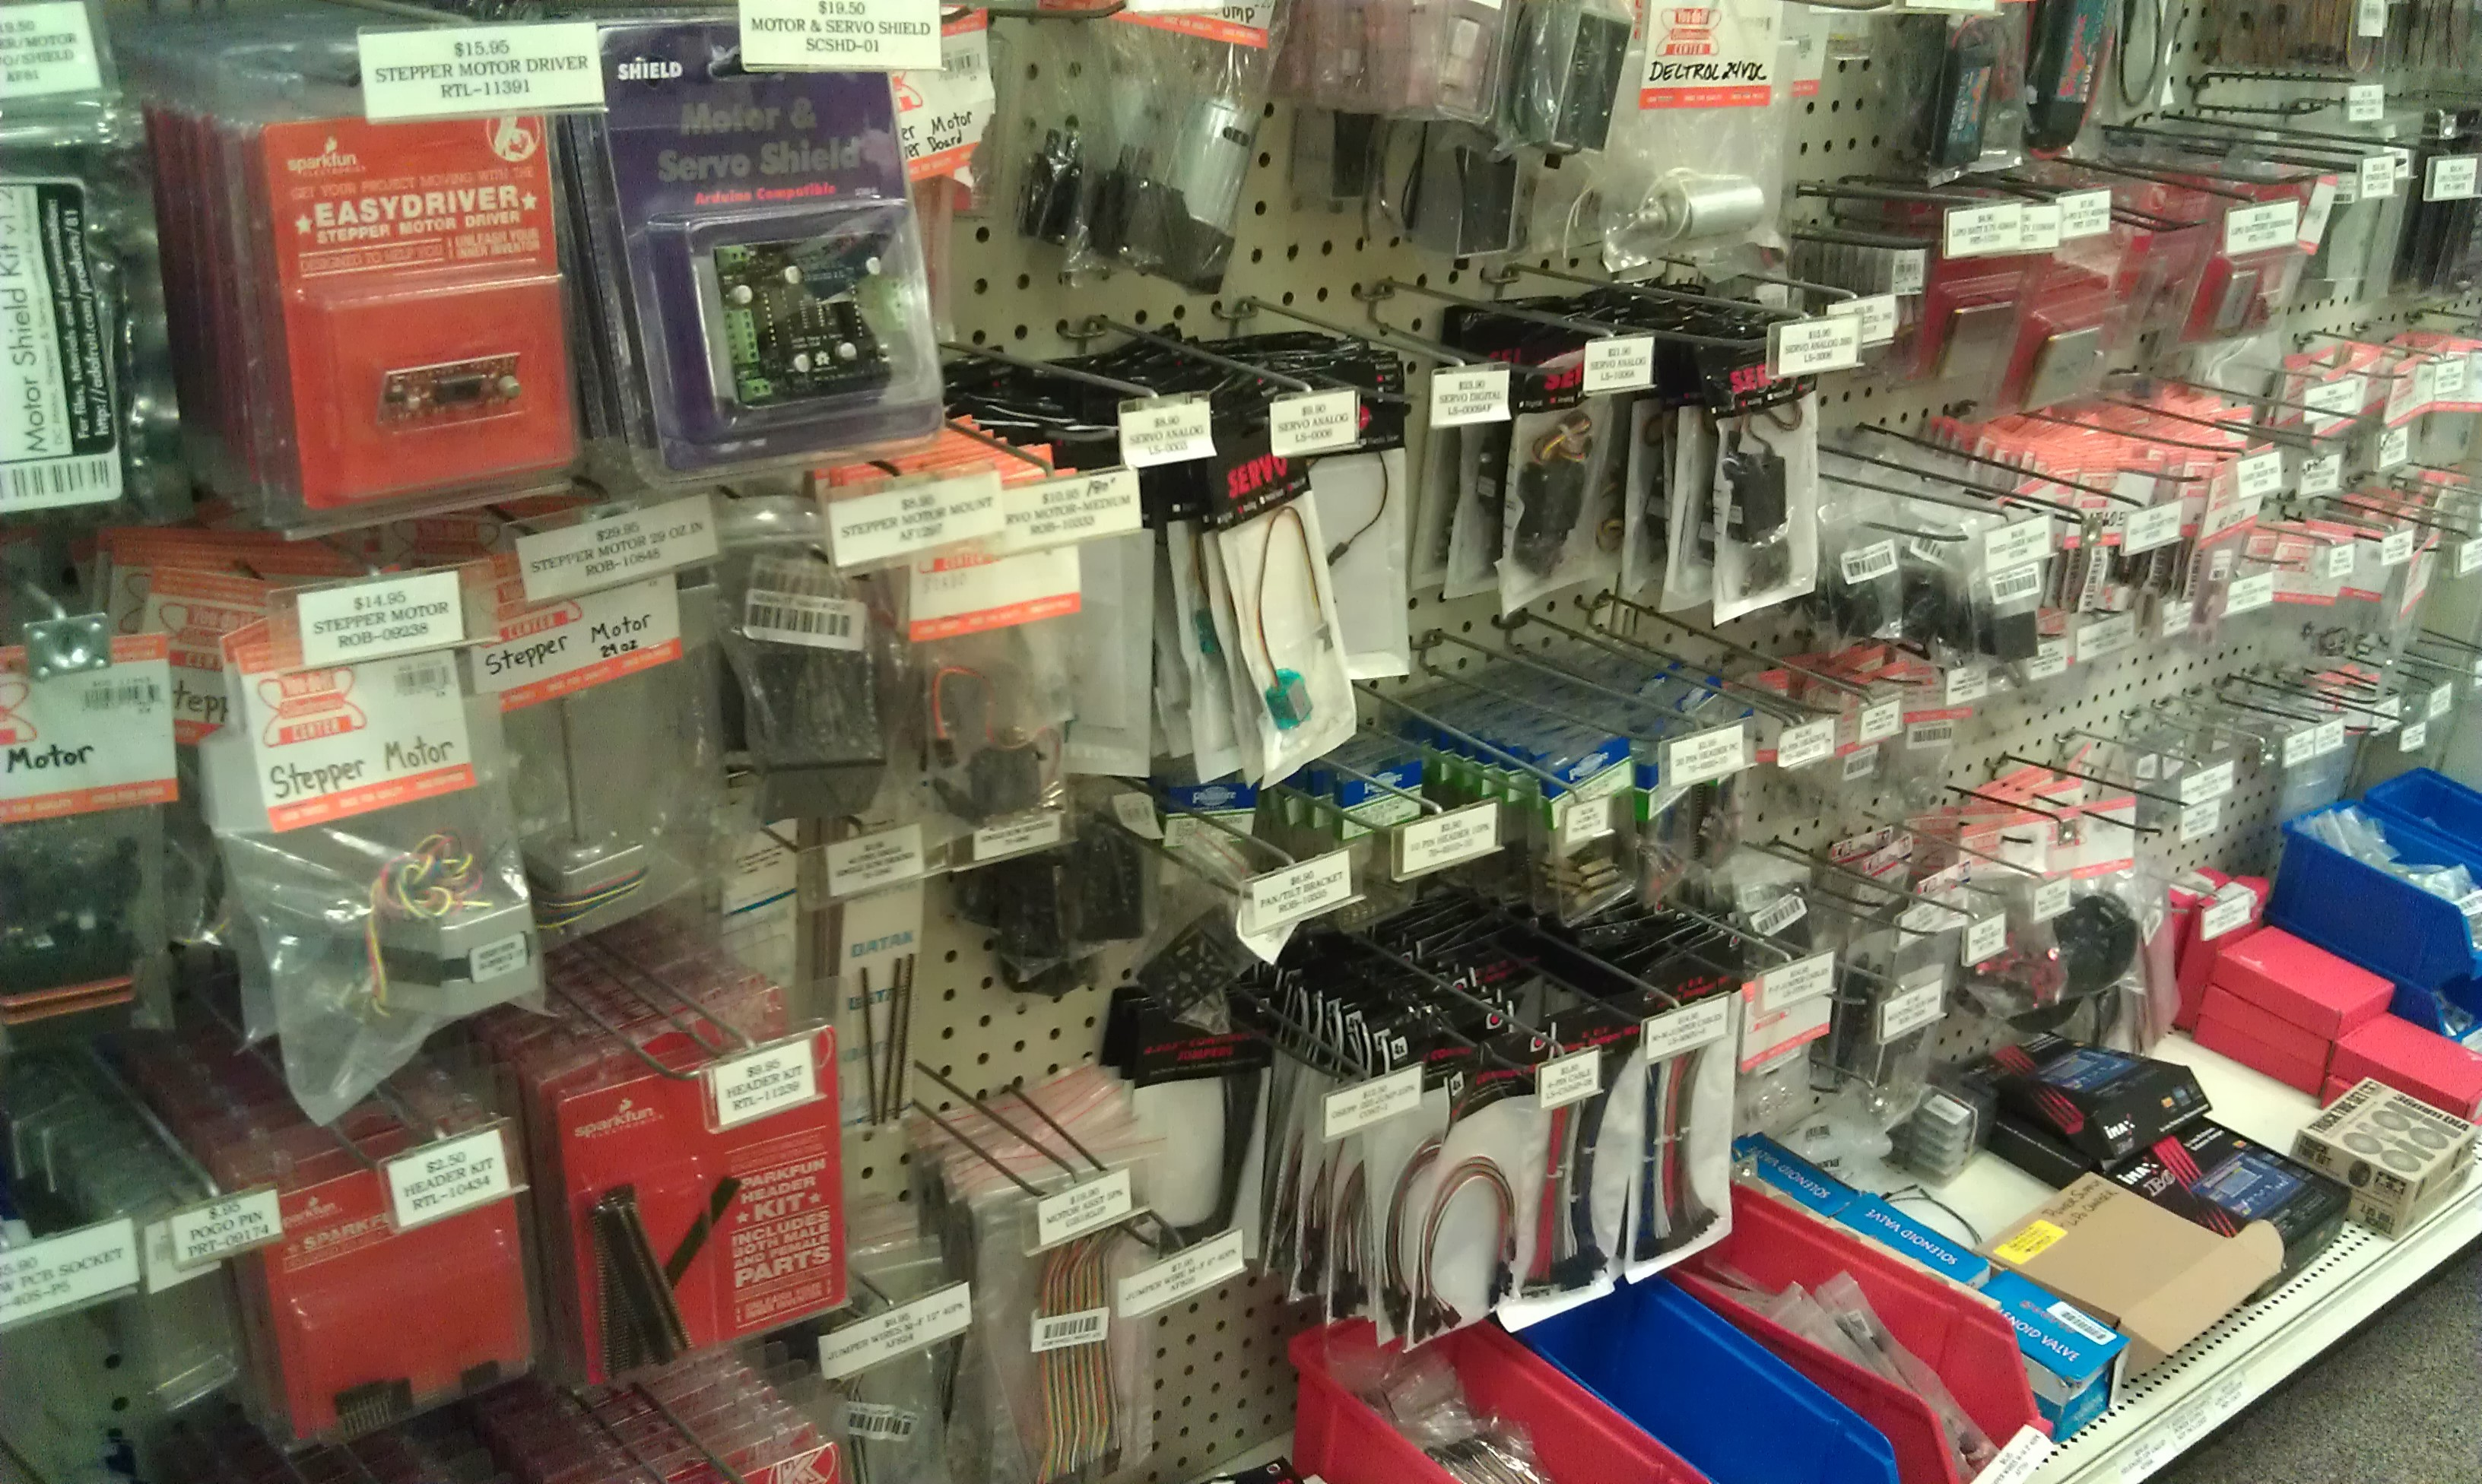 Local stem shopping in newton youdoit electronics newtonstem on the first floor they have a ton of electronics parts connectors switches cables on the second floor they have consumer electronics tvs solutioingenieria Gallery